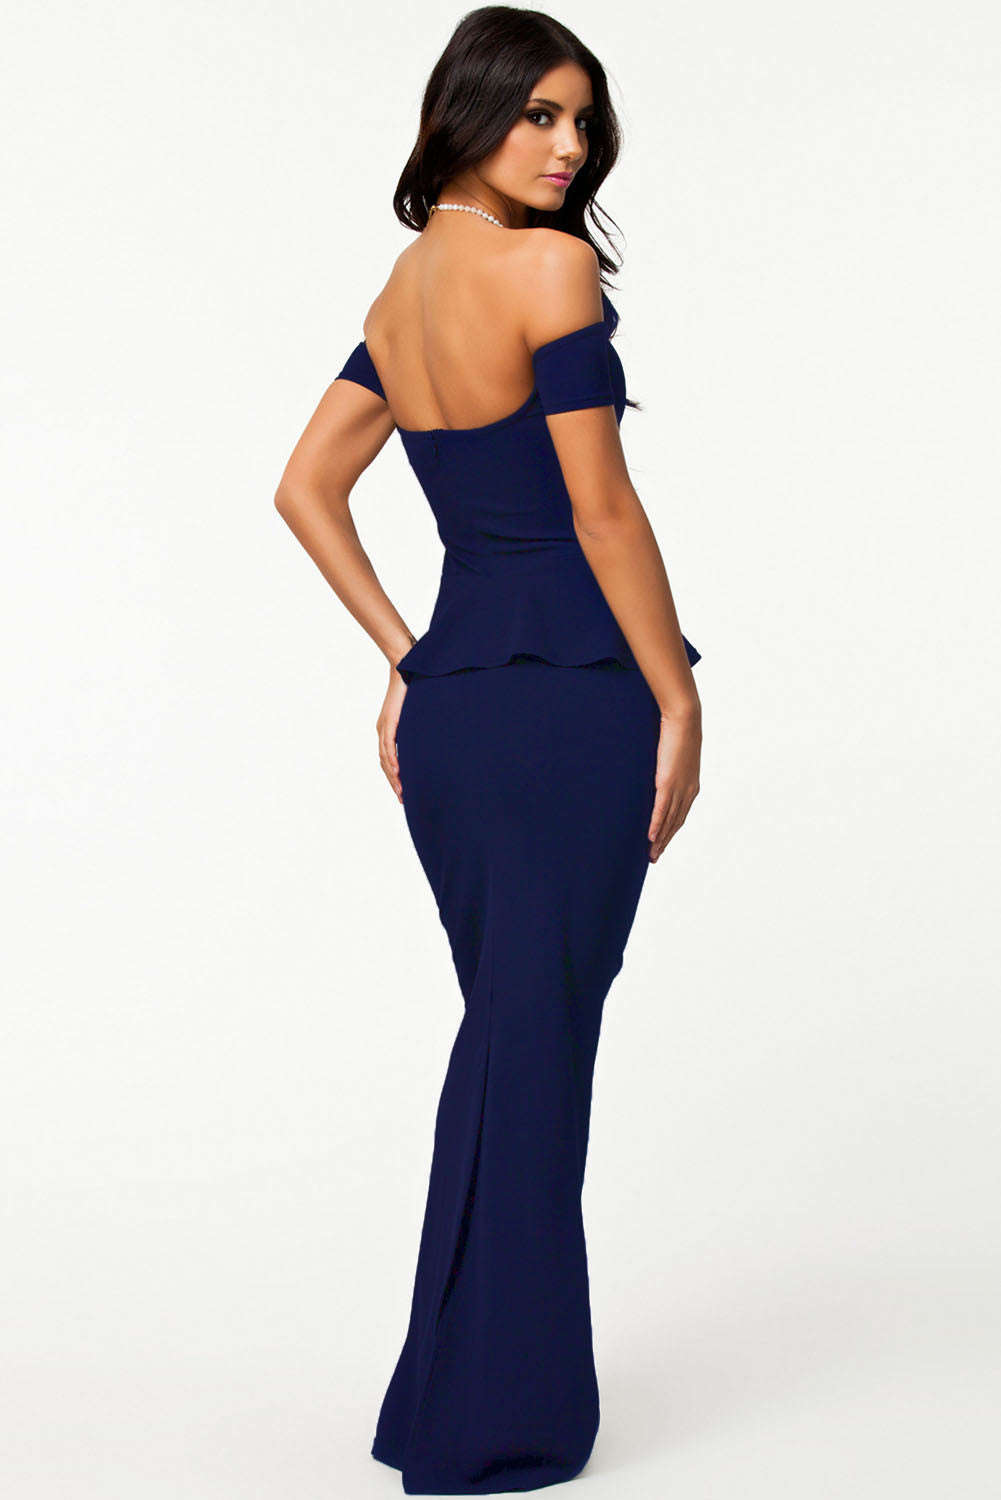 acc6d6683a2 Blue Peplum Maxi Dress With Drop Shoulder – SEXY AFFORDABLE CLOTHING